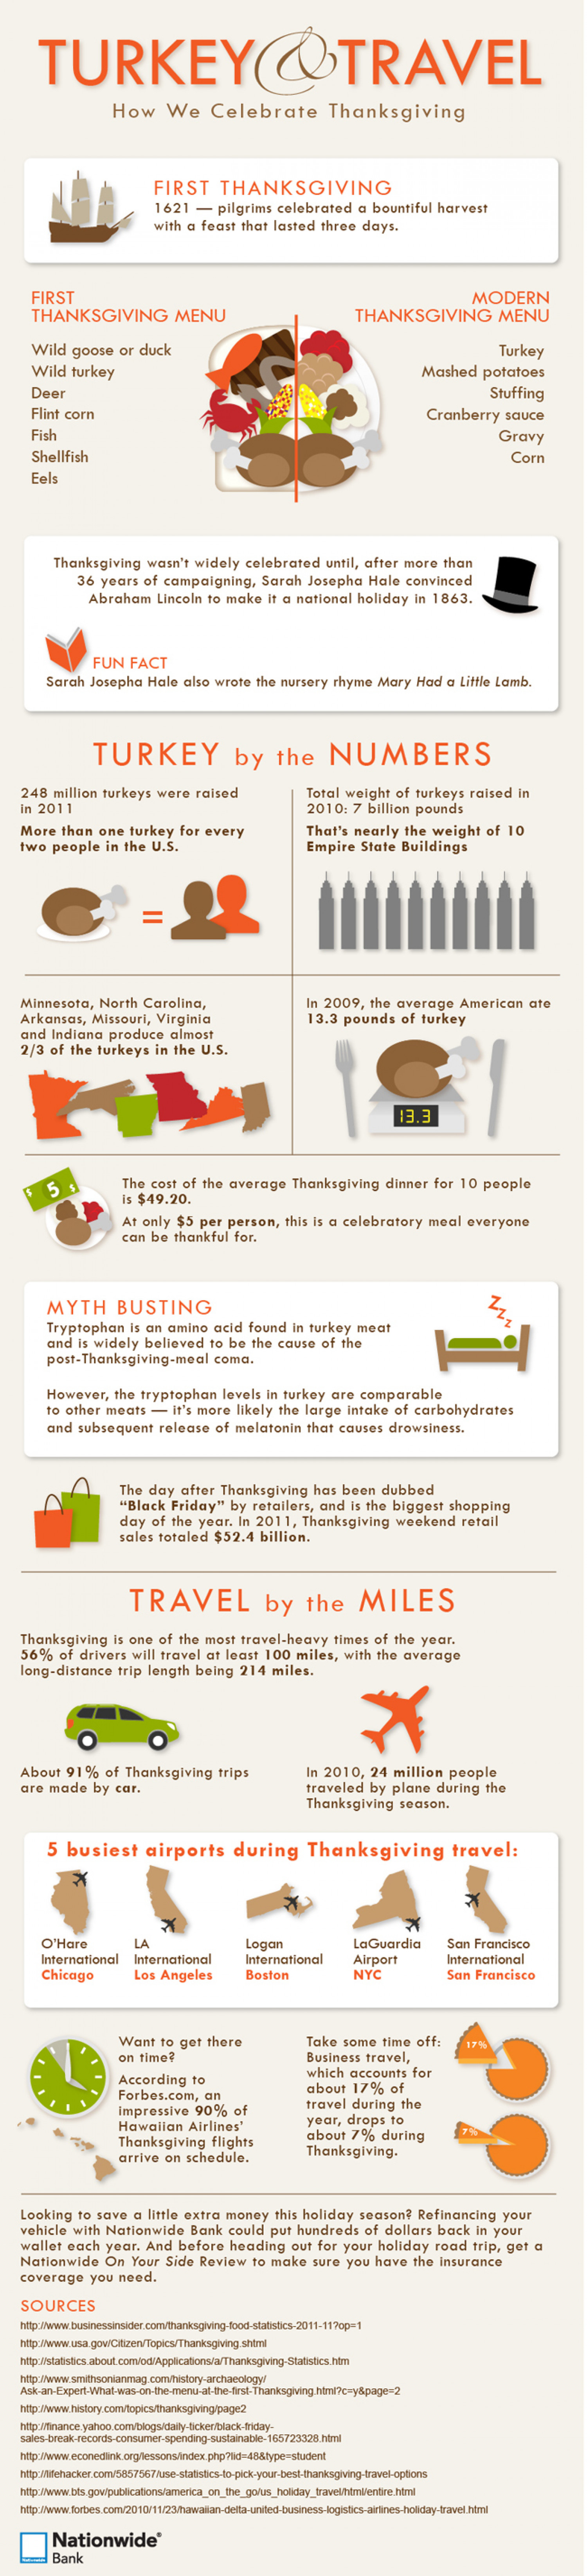 Turkey & Travel Infographic